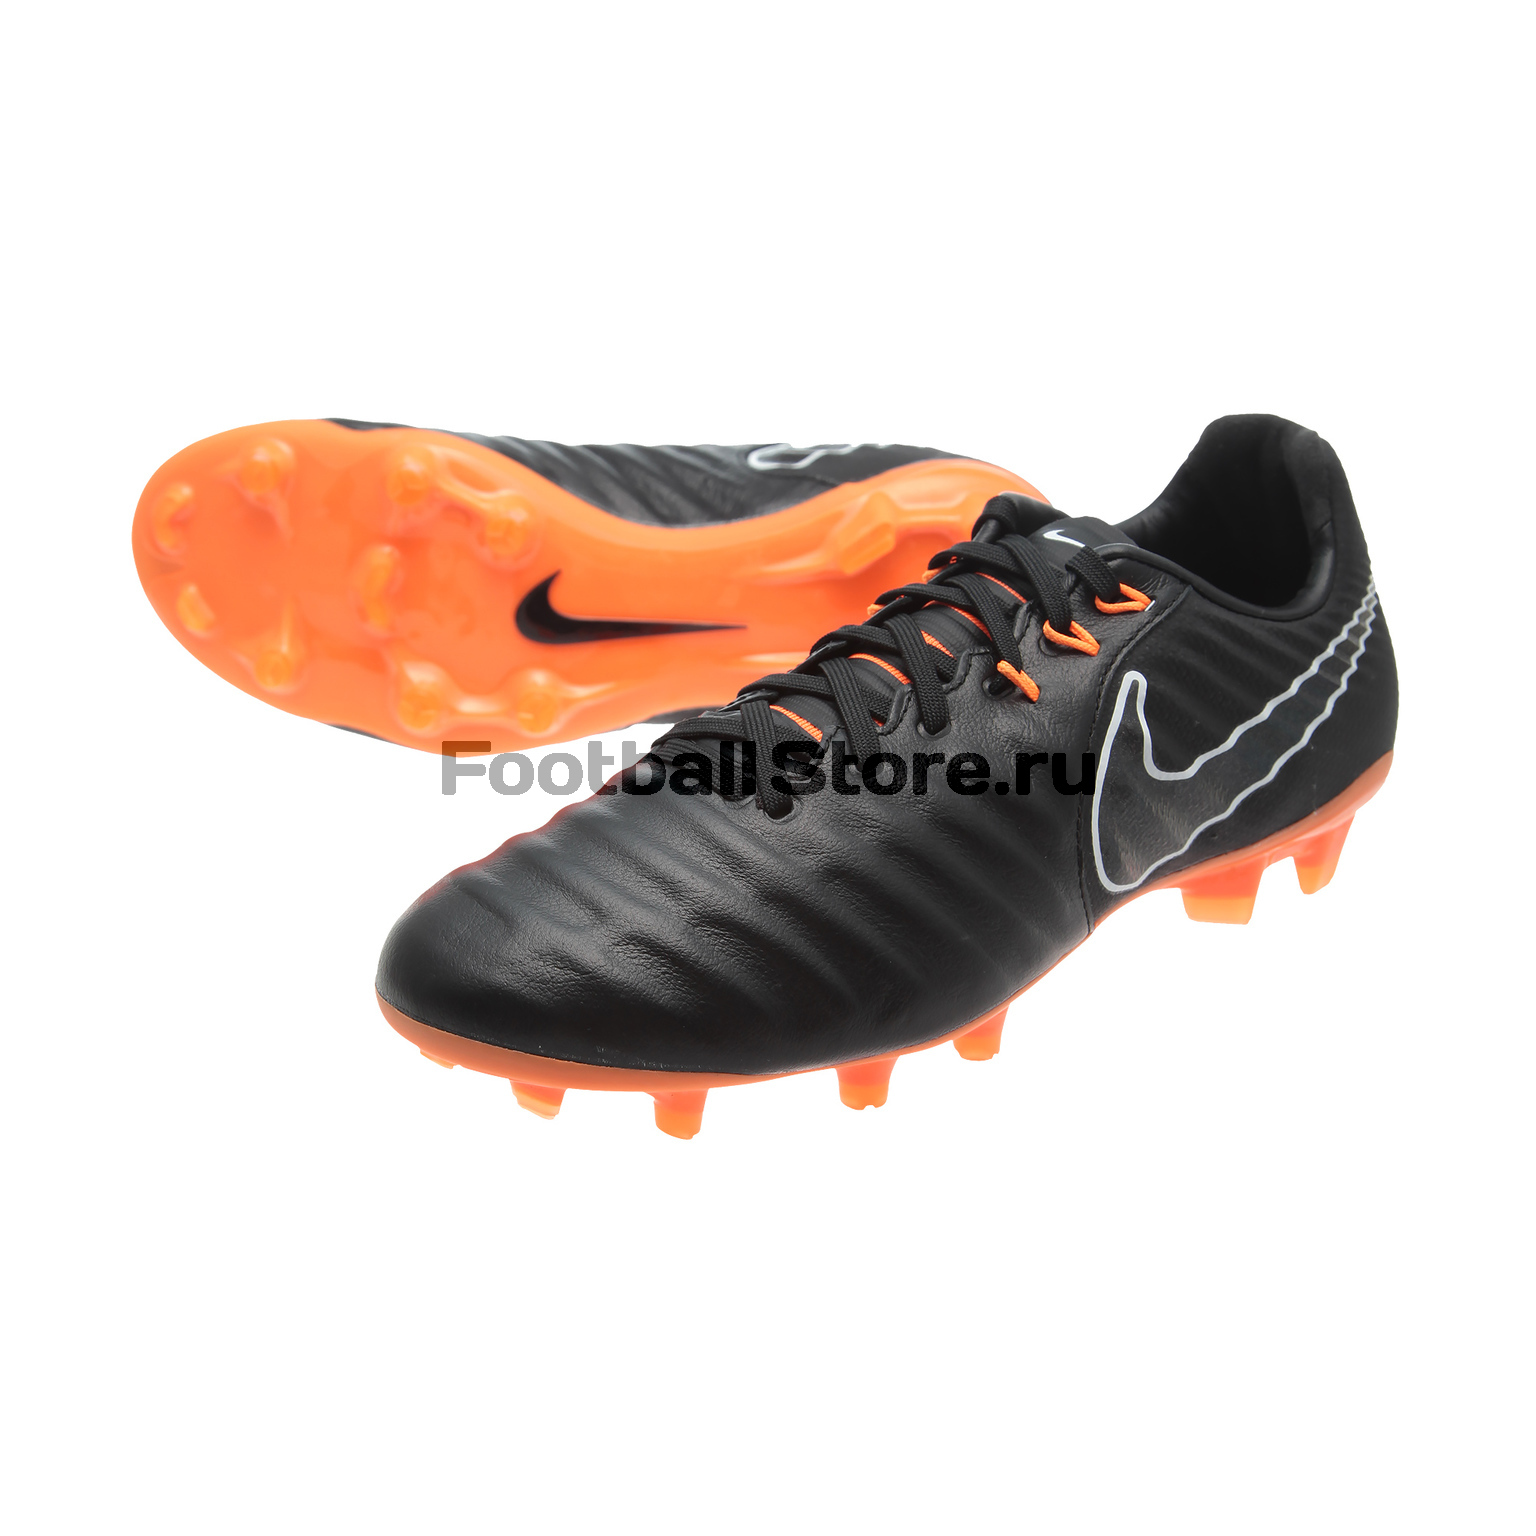 Бутсы Nike JR Legend 7 Elite FG AH7258-080 детские бутсы nike бутсы nike jr phantom 3 elite df fg ah7292 081